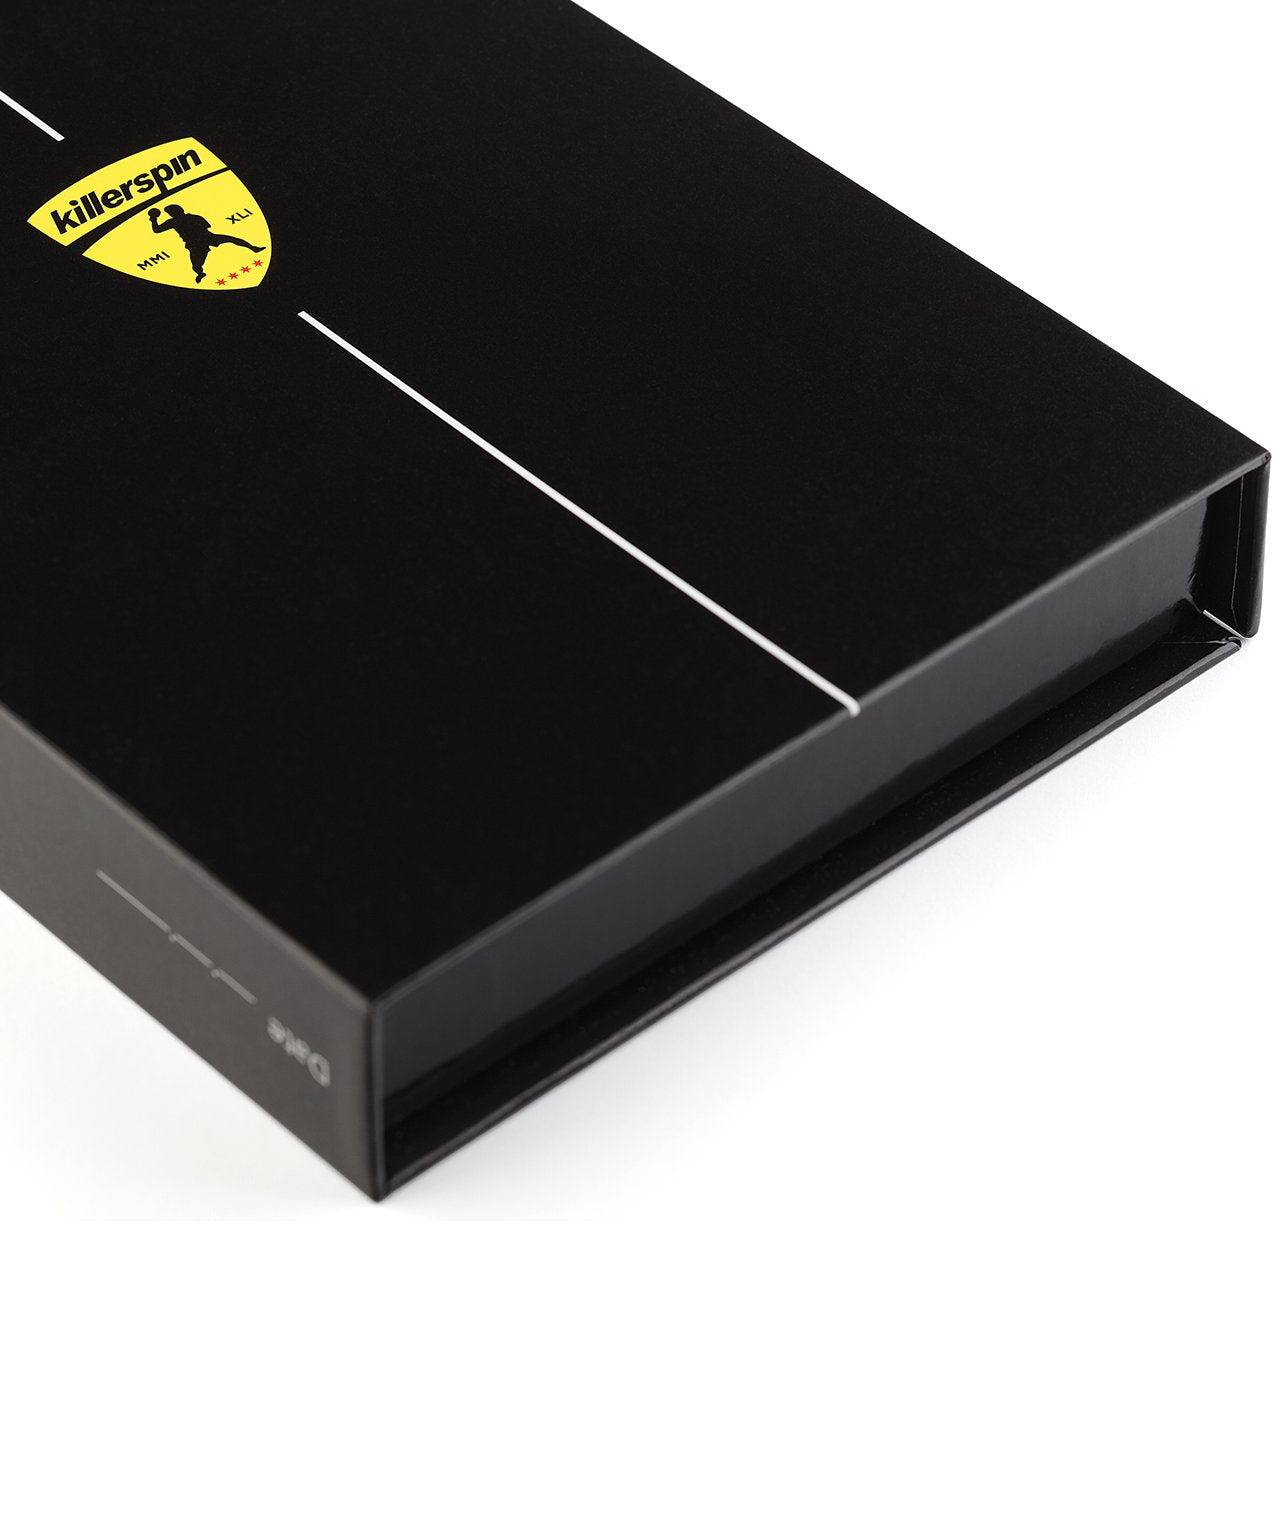 Killerspin Black Memory Book Ping Pong Paddle Box - Logo